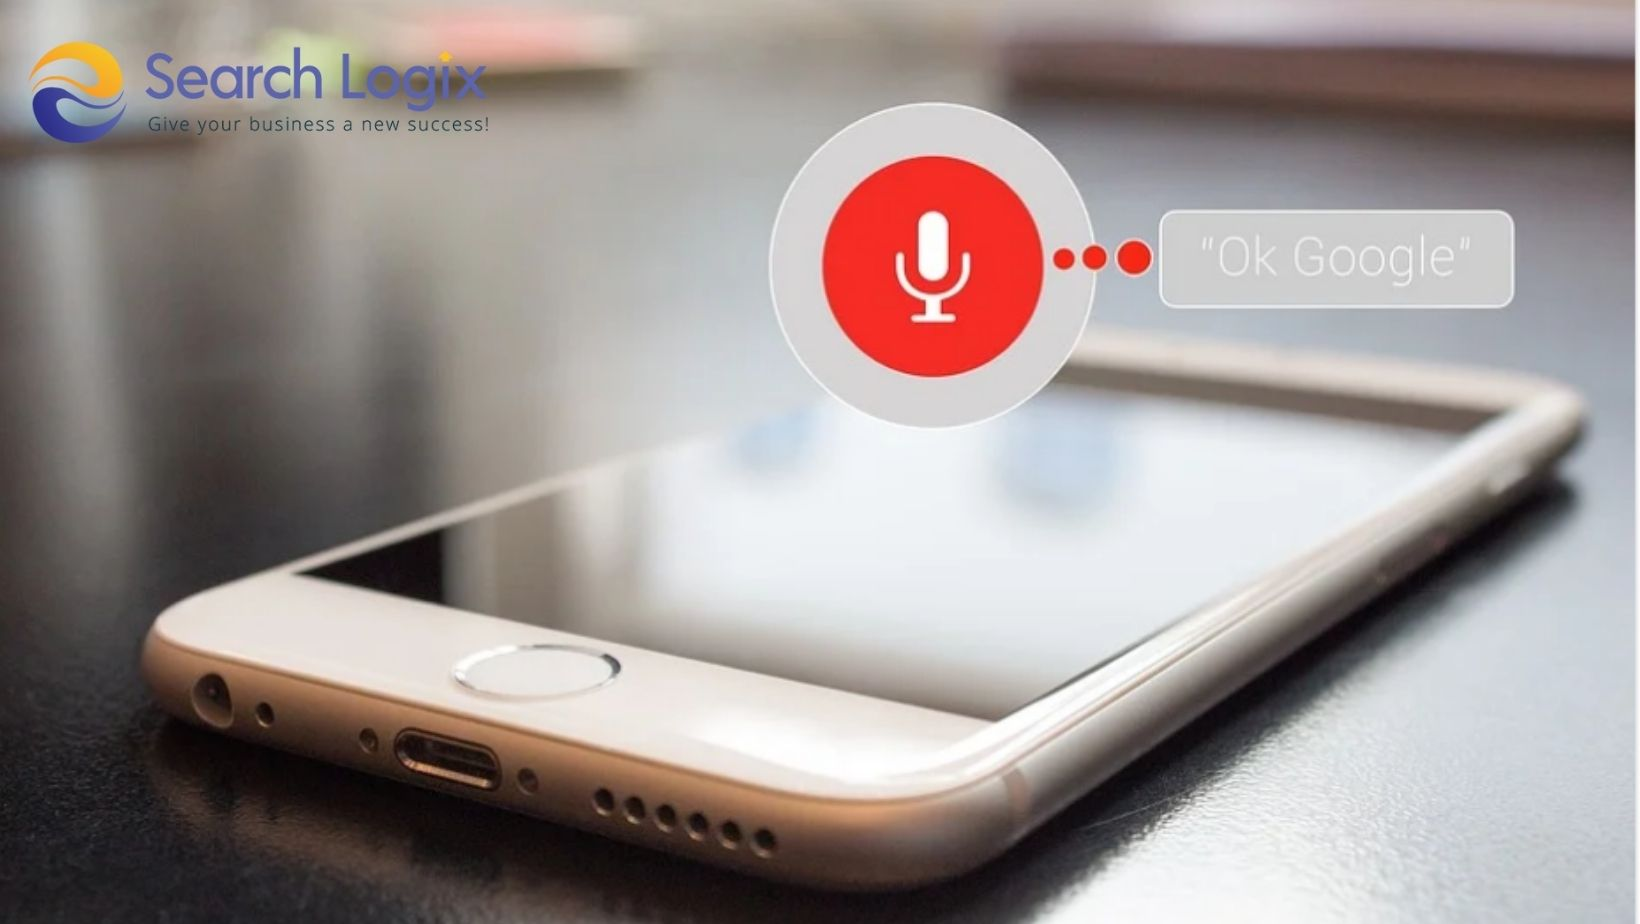 Introducing Voice Search